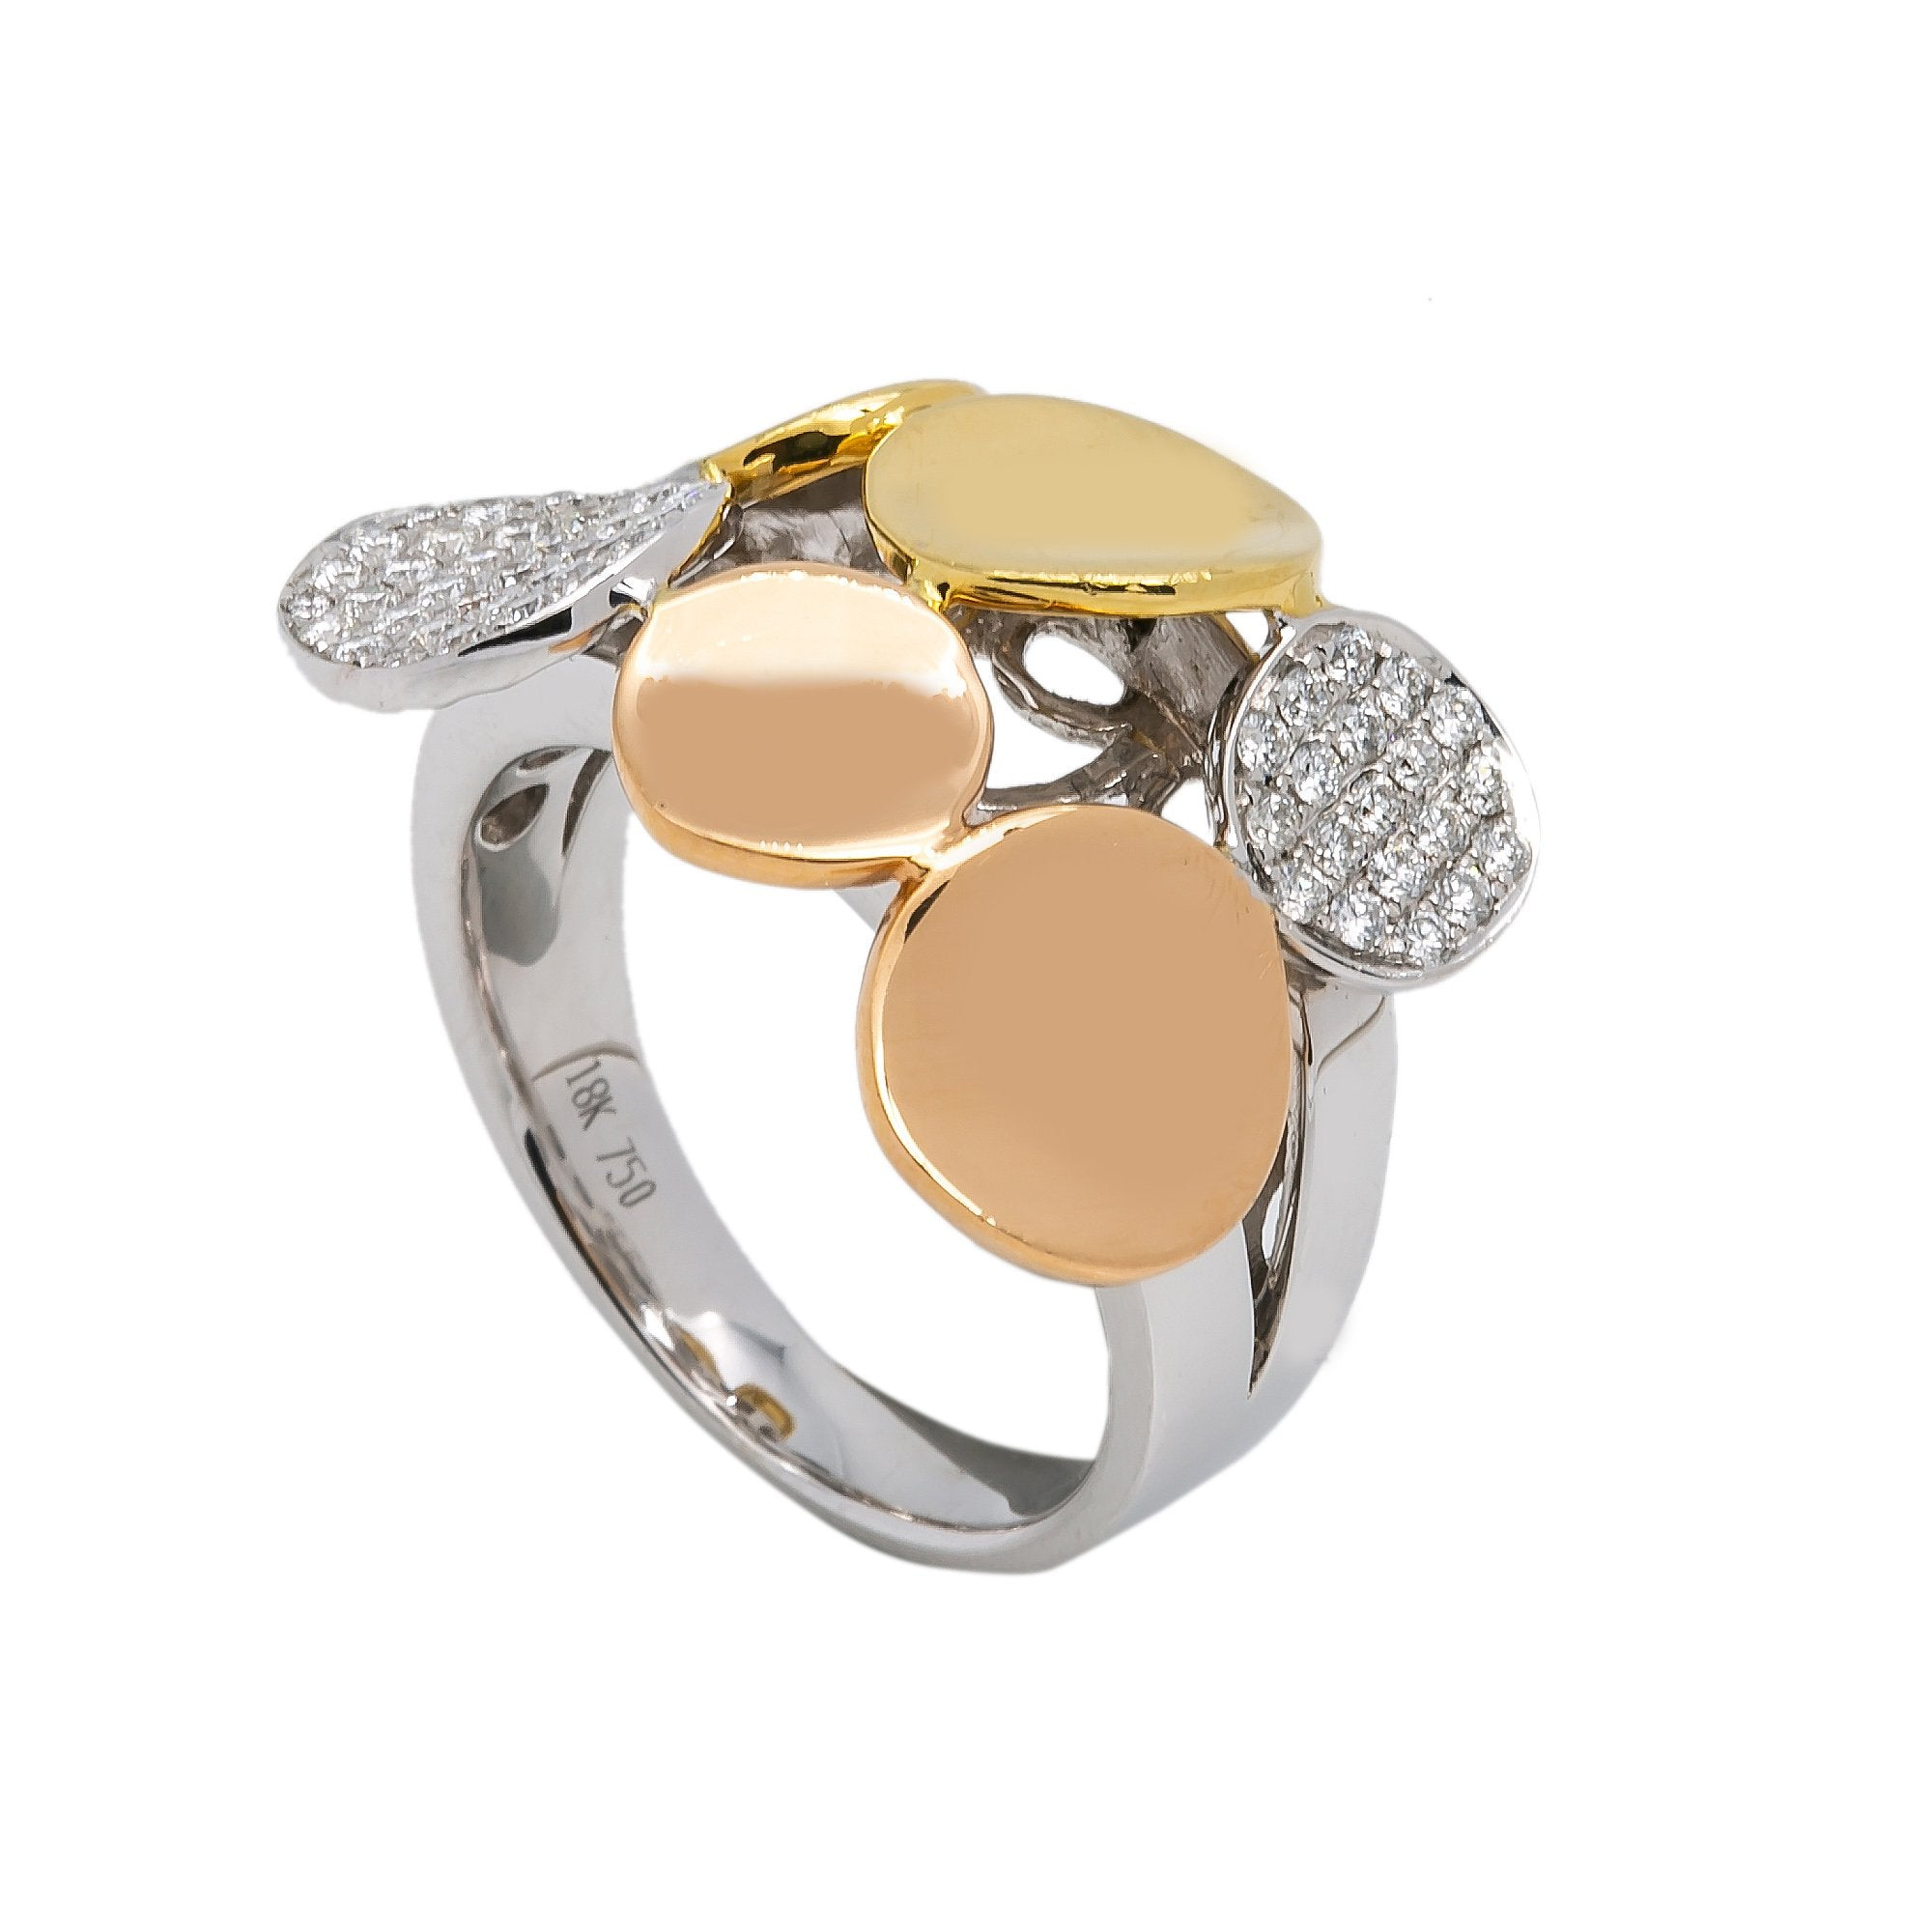 LADIES 18K YELLOW AND ROSE GOLD WITH 0.50 CT HAND RING